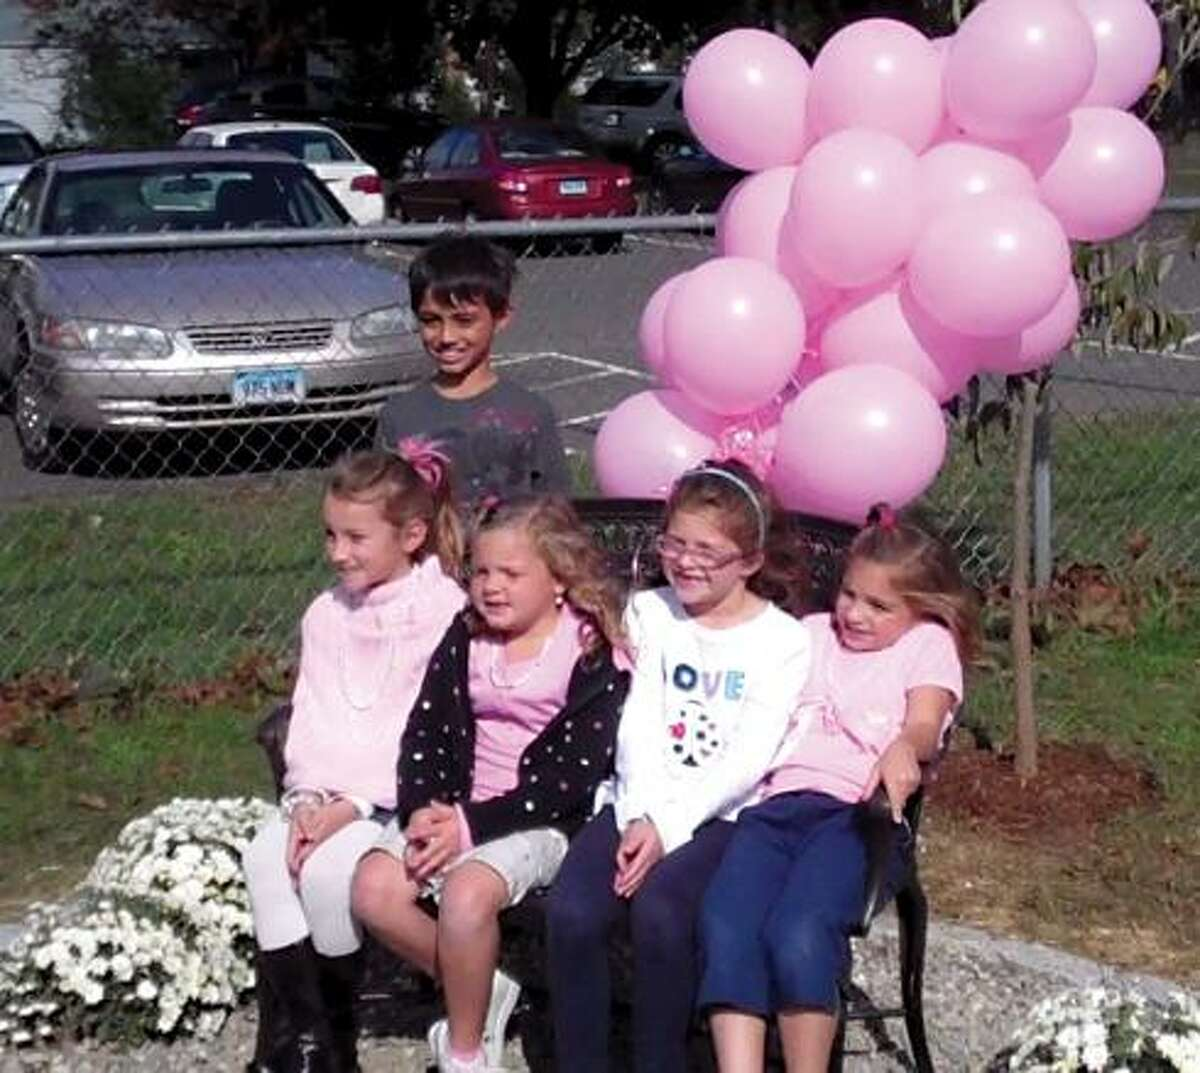 Five former students of Catherine Meacham, Tali Arce, Sadie Budzik, Erica Dewey, Monica Dewey, and Anna Sbriglio all spoke at the memorial ceremony in her honor at the Edna C. Stevens elementary school Thursday.